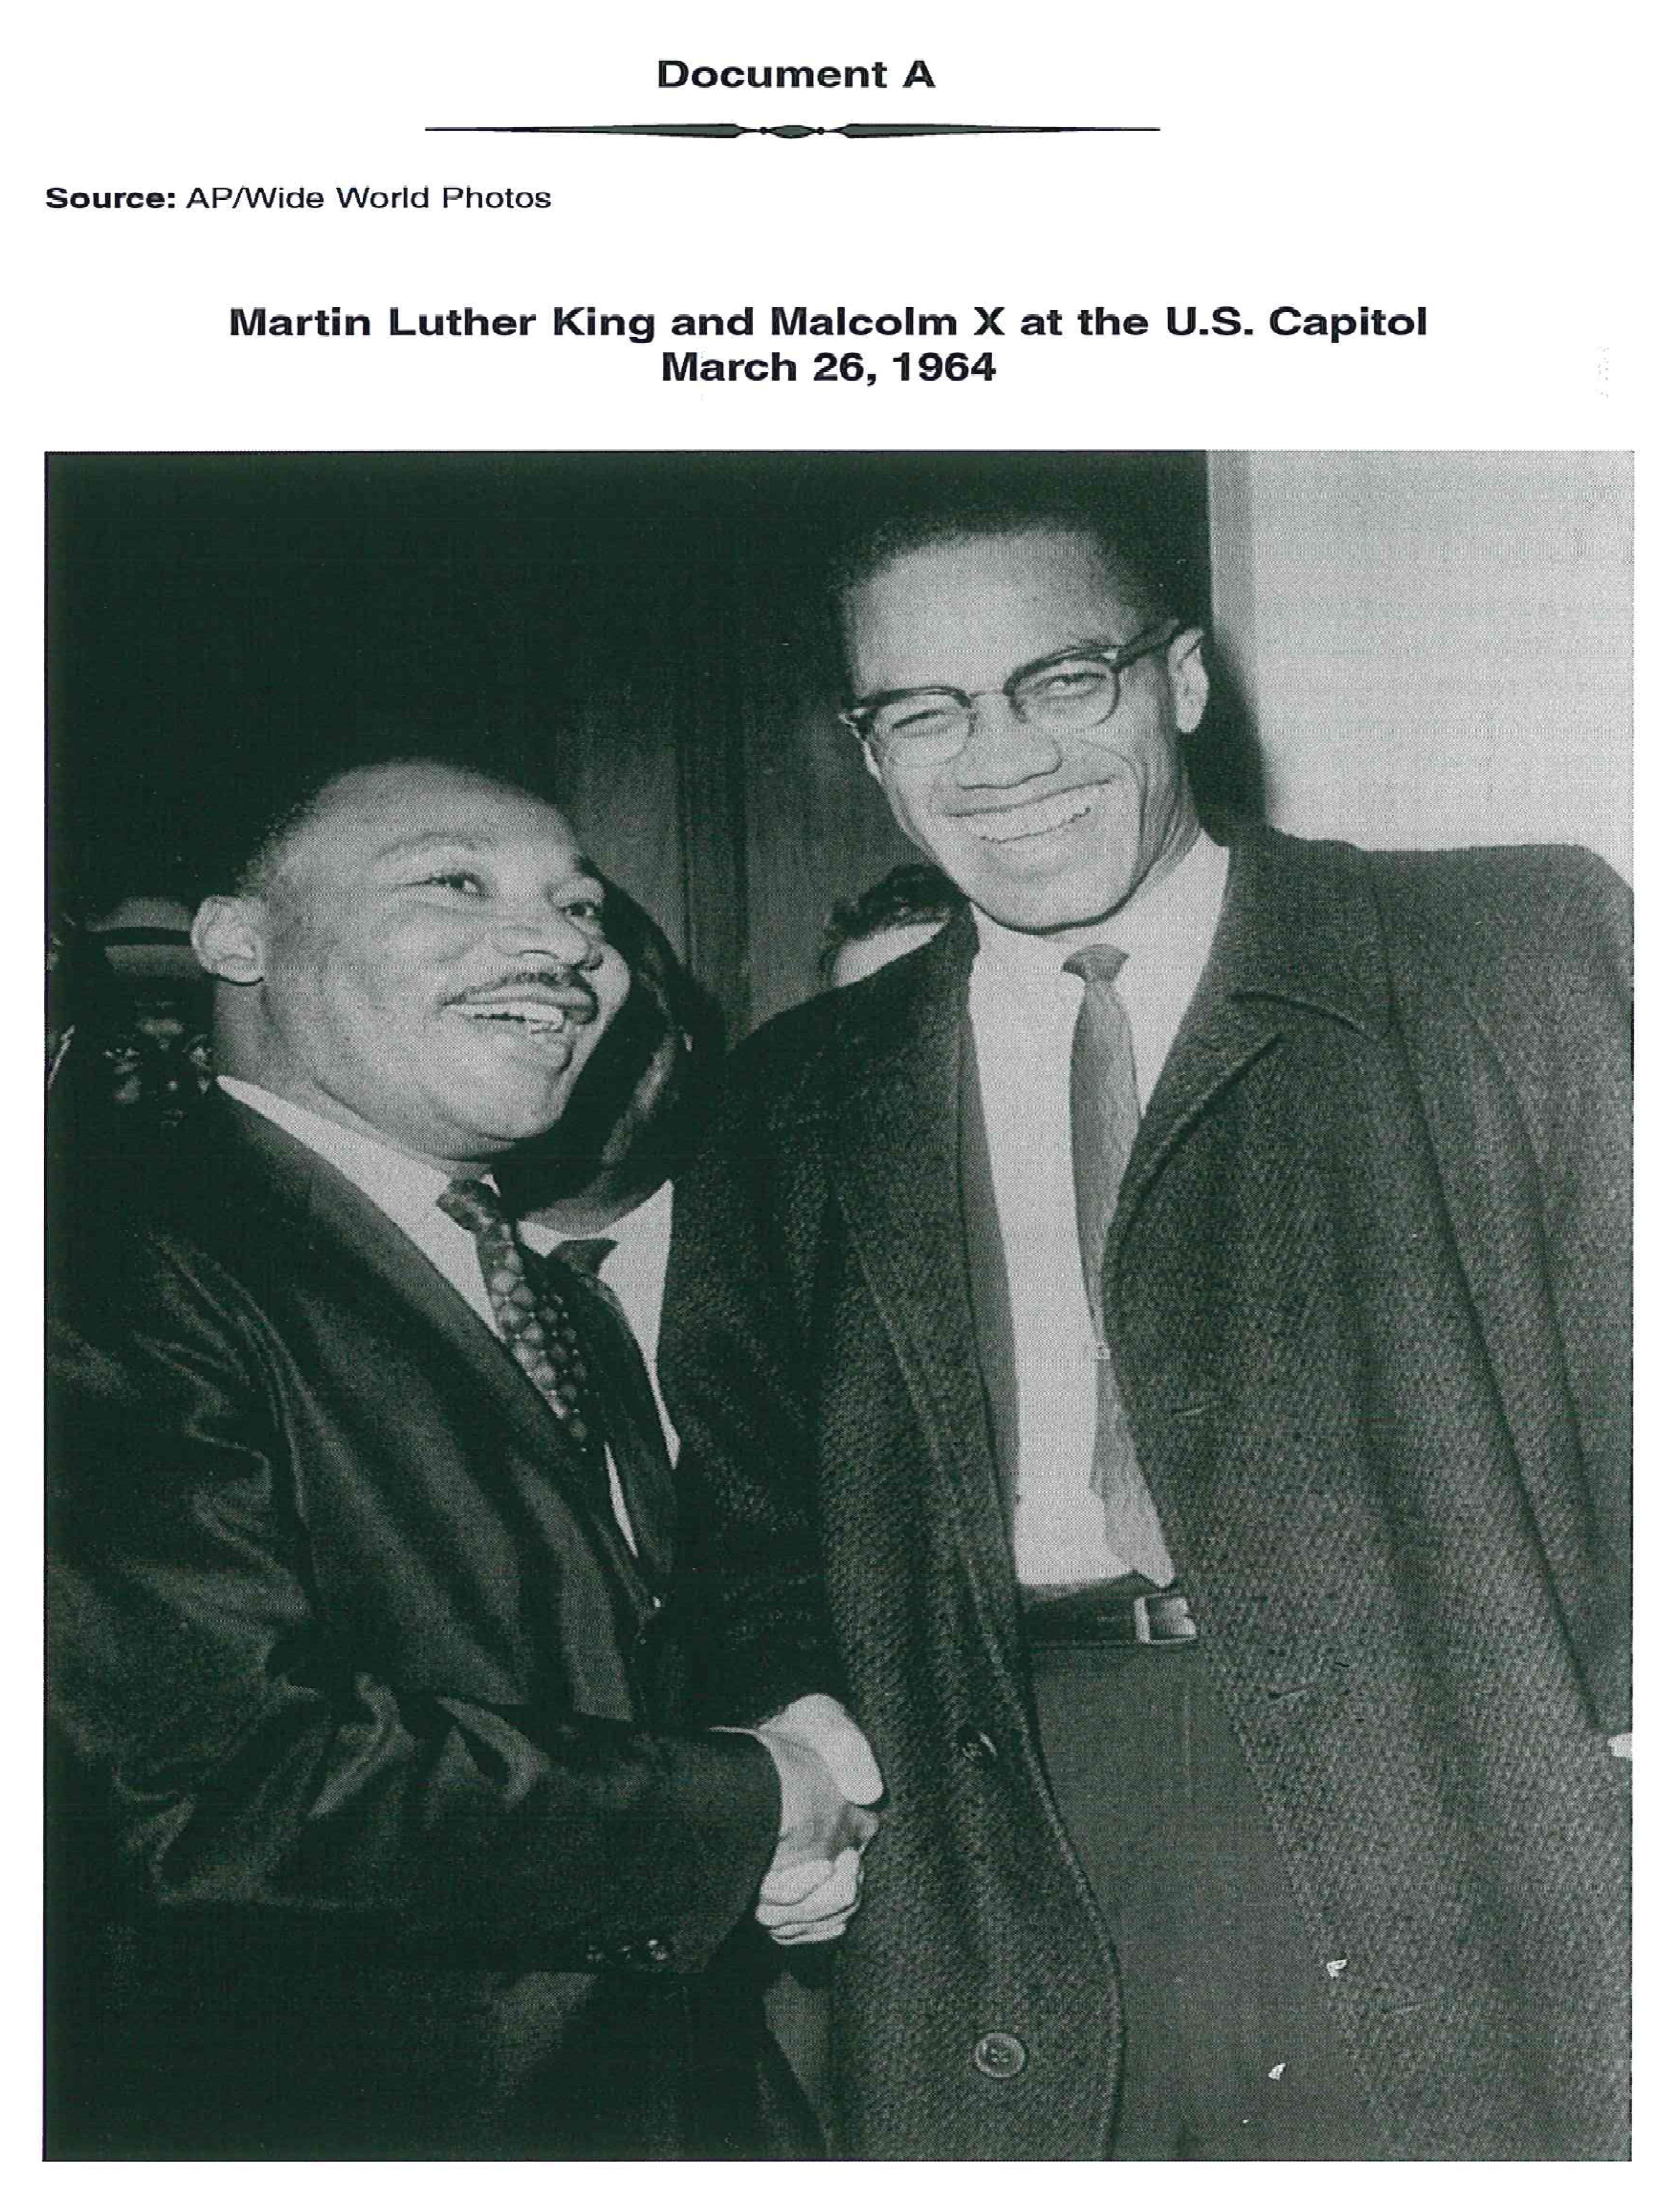 an analysis of martin luther kings and malcolm xs approach